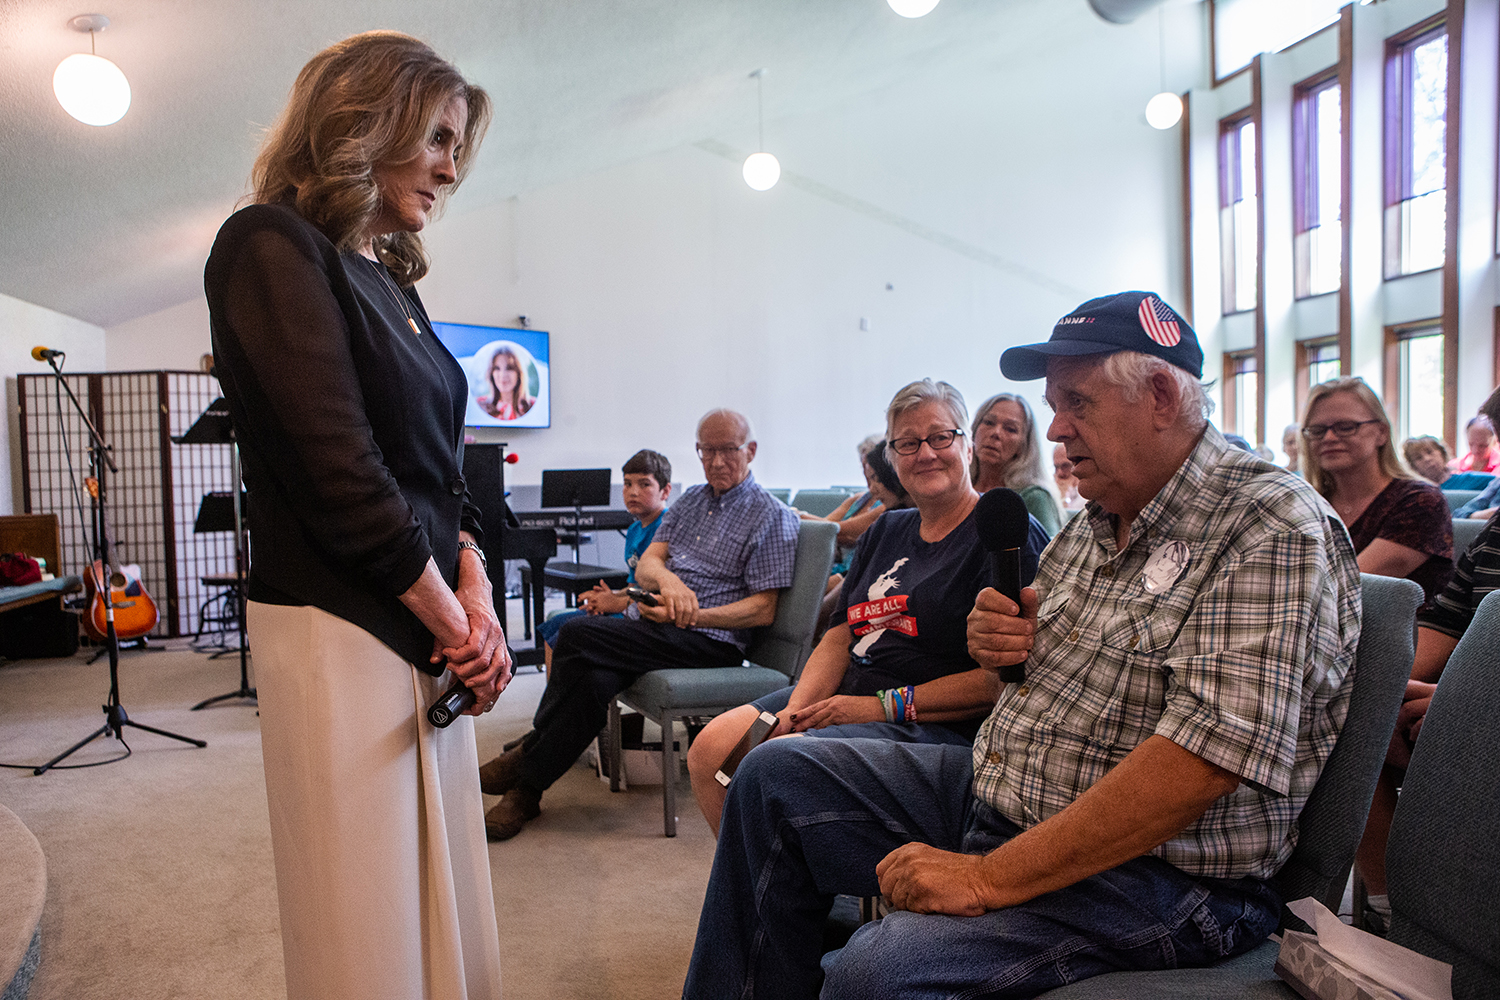 during a town hall event at the Unity Center in Cedar Rapids on Sunday, June 30, 2019. (Wyatt Dlouhy/The Daily Iowan)